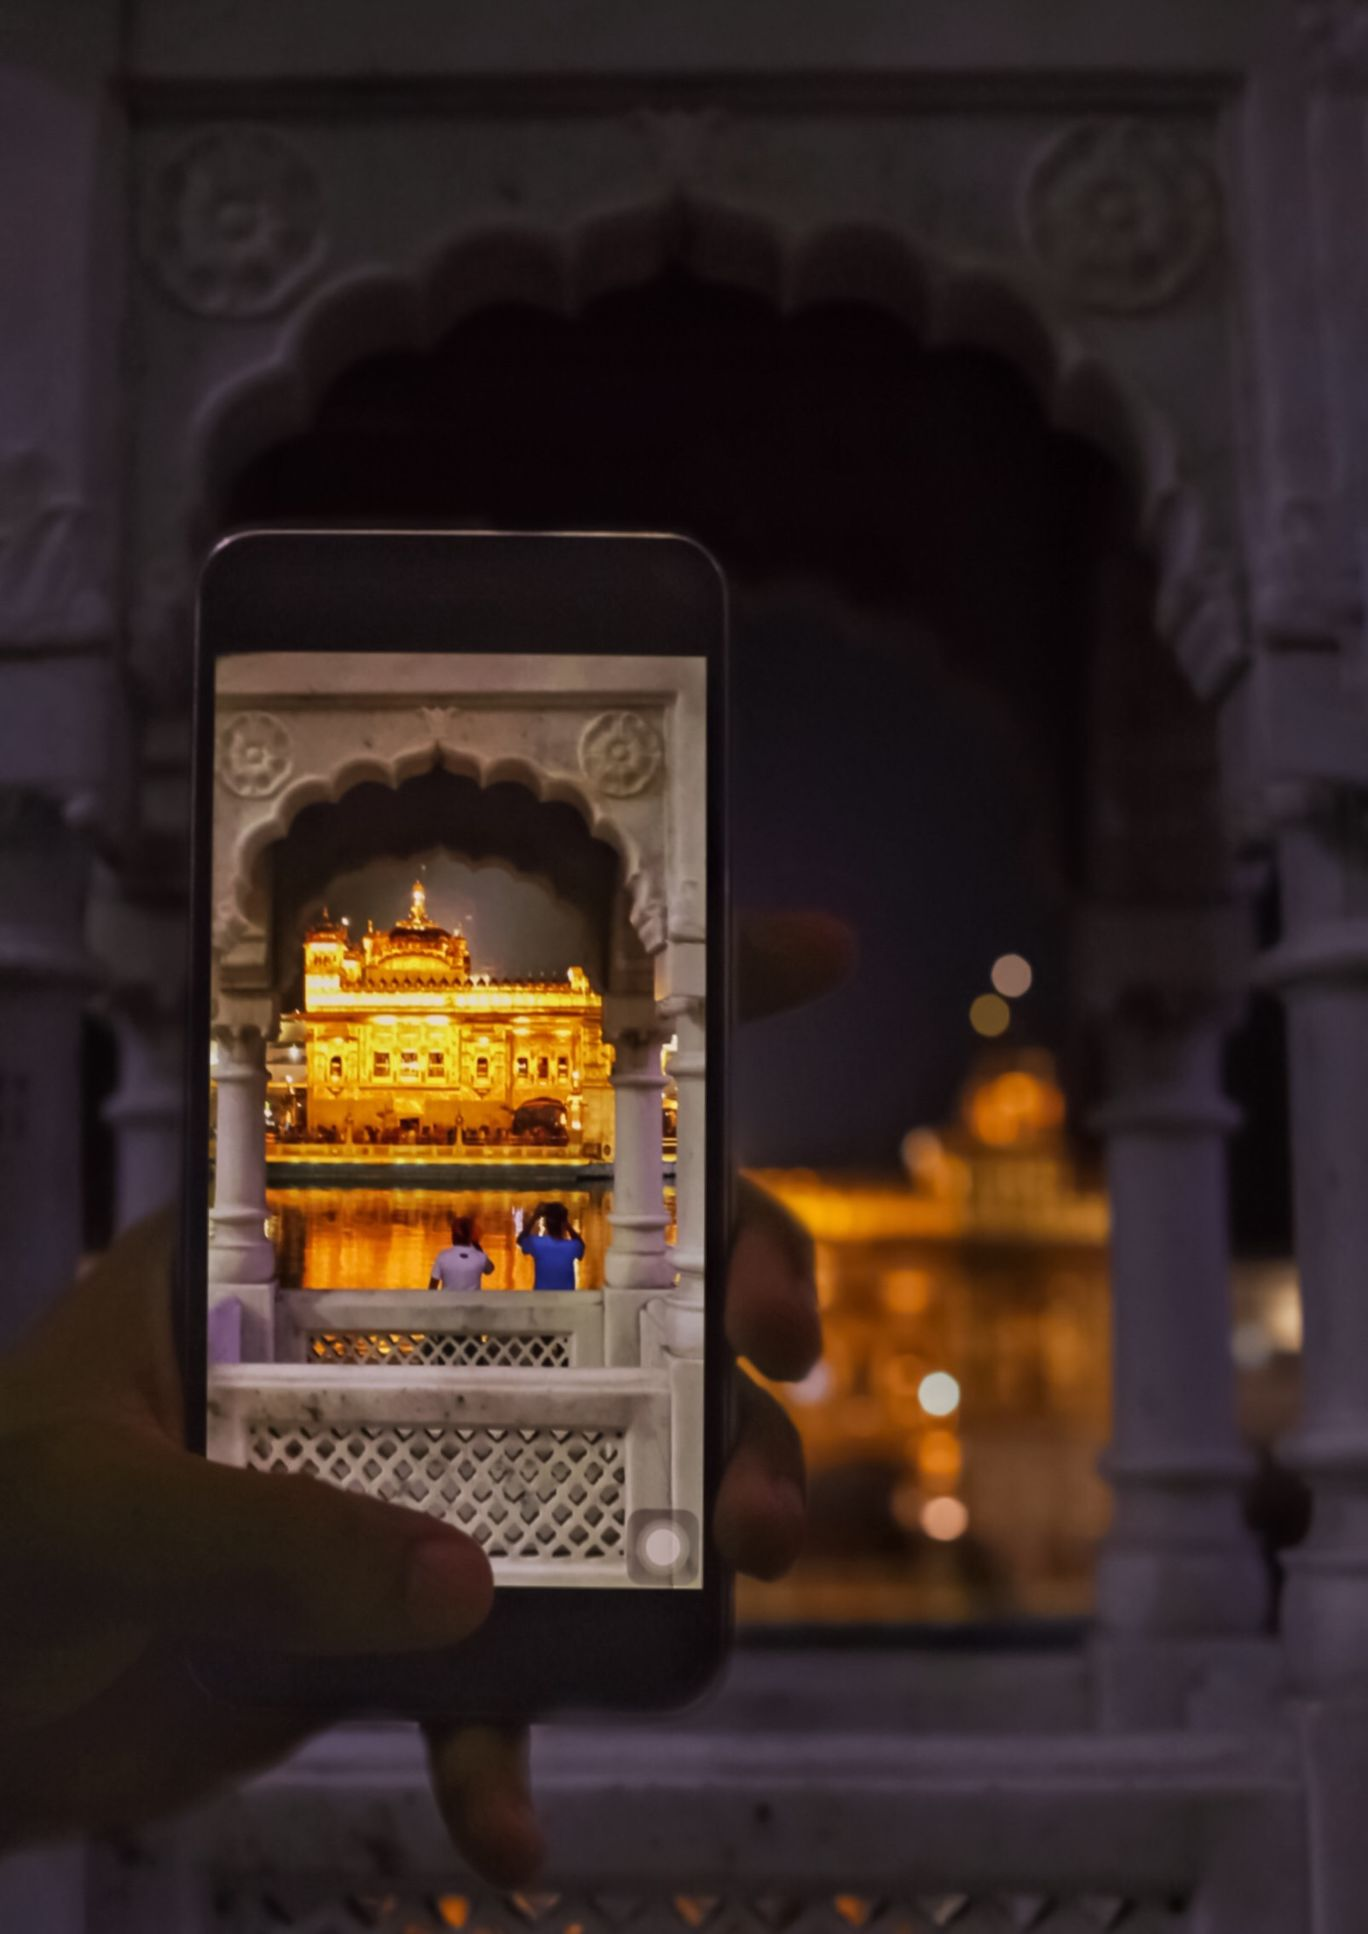 Photo of Golden Temple Amritsar - Tour Packages - Sightseeings By Sanah mahajan